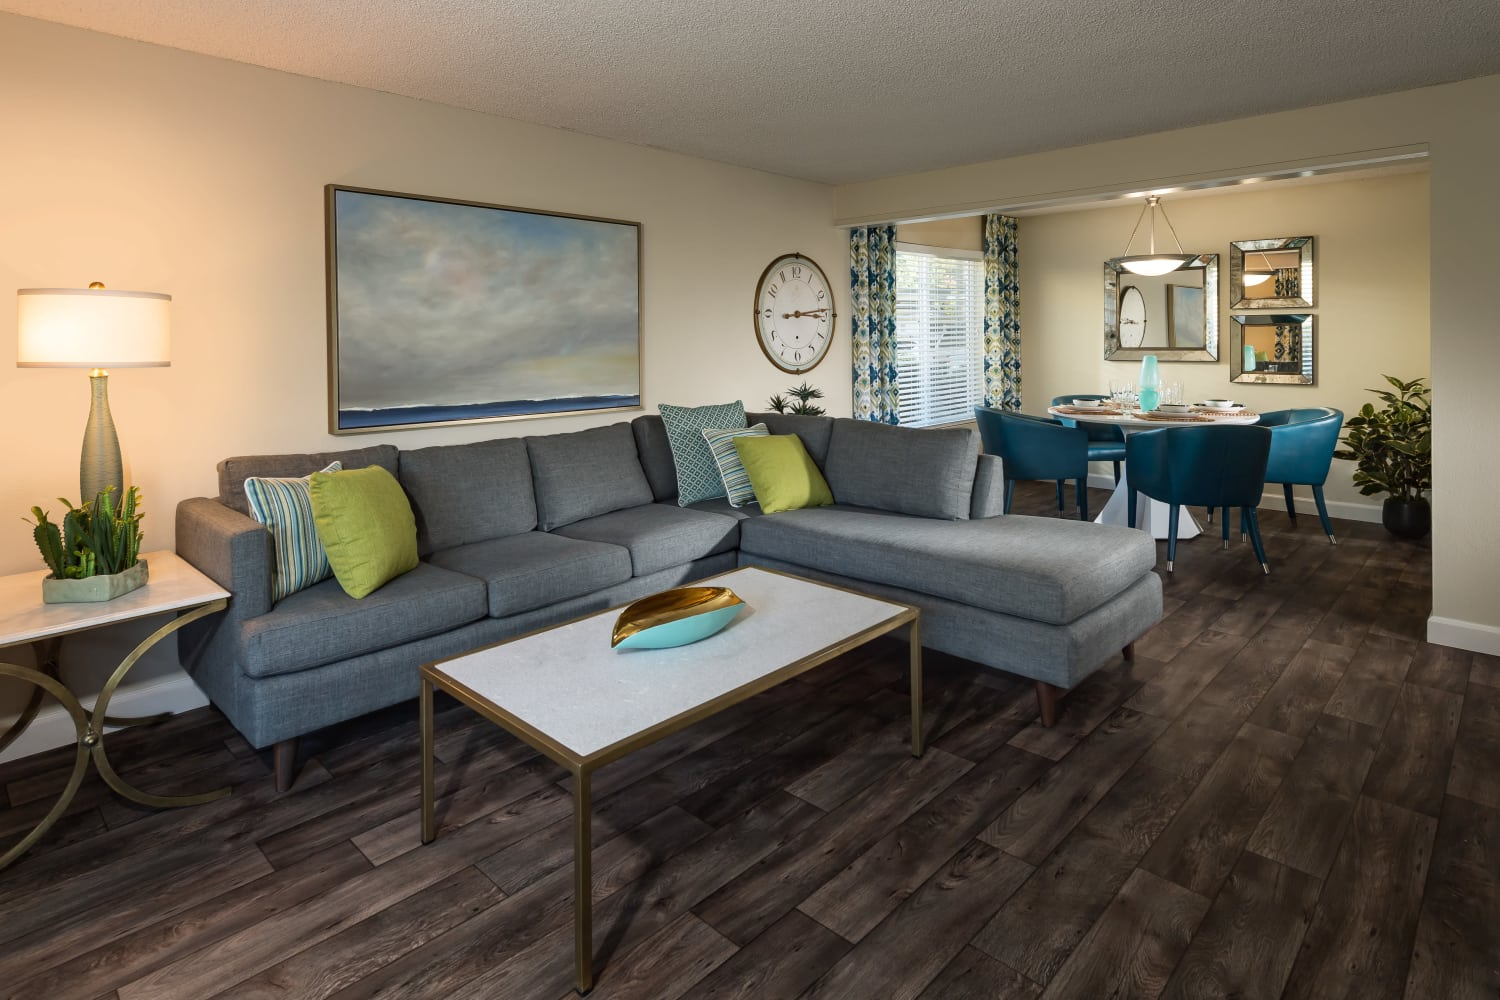 Well appointed living room at Edgewood Park Apartments in Bellevue, Washington